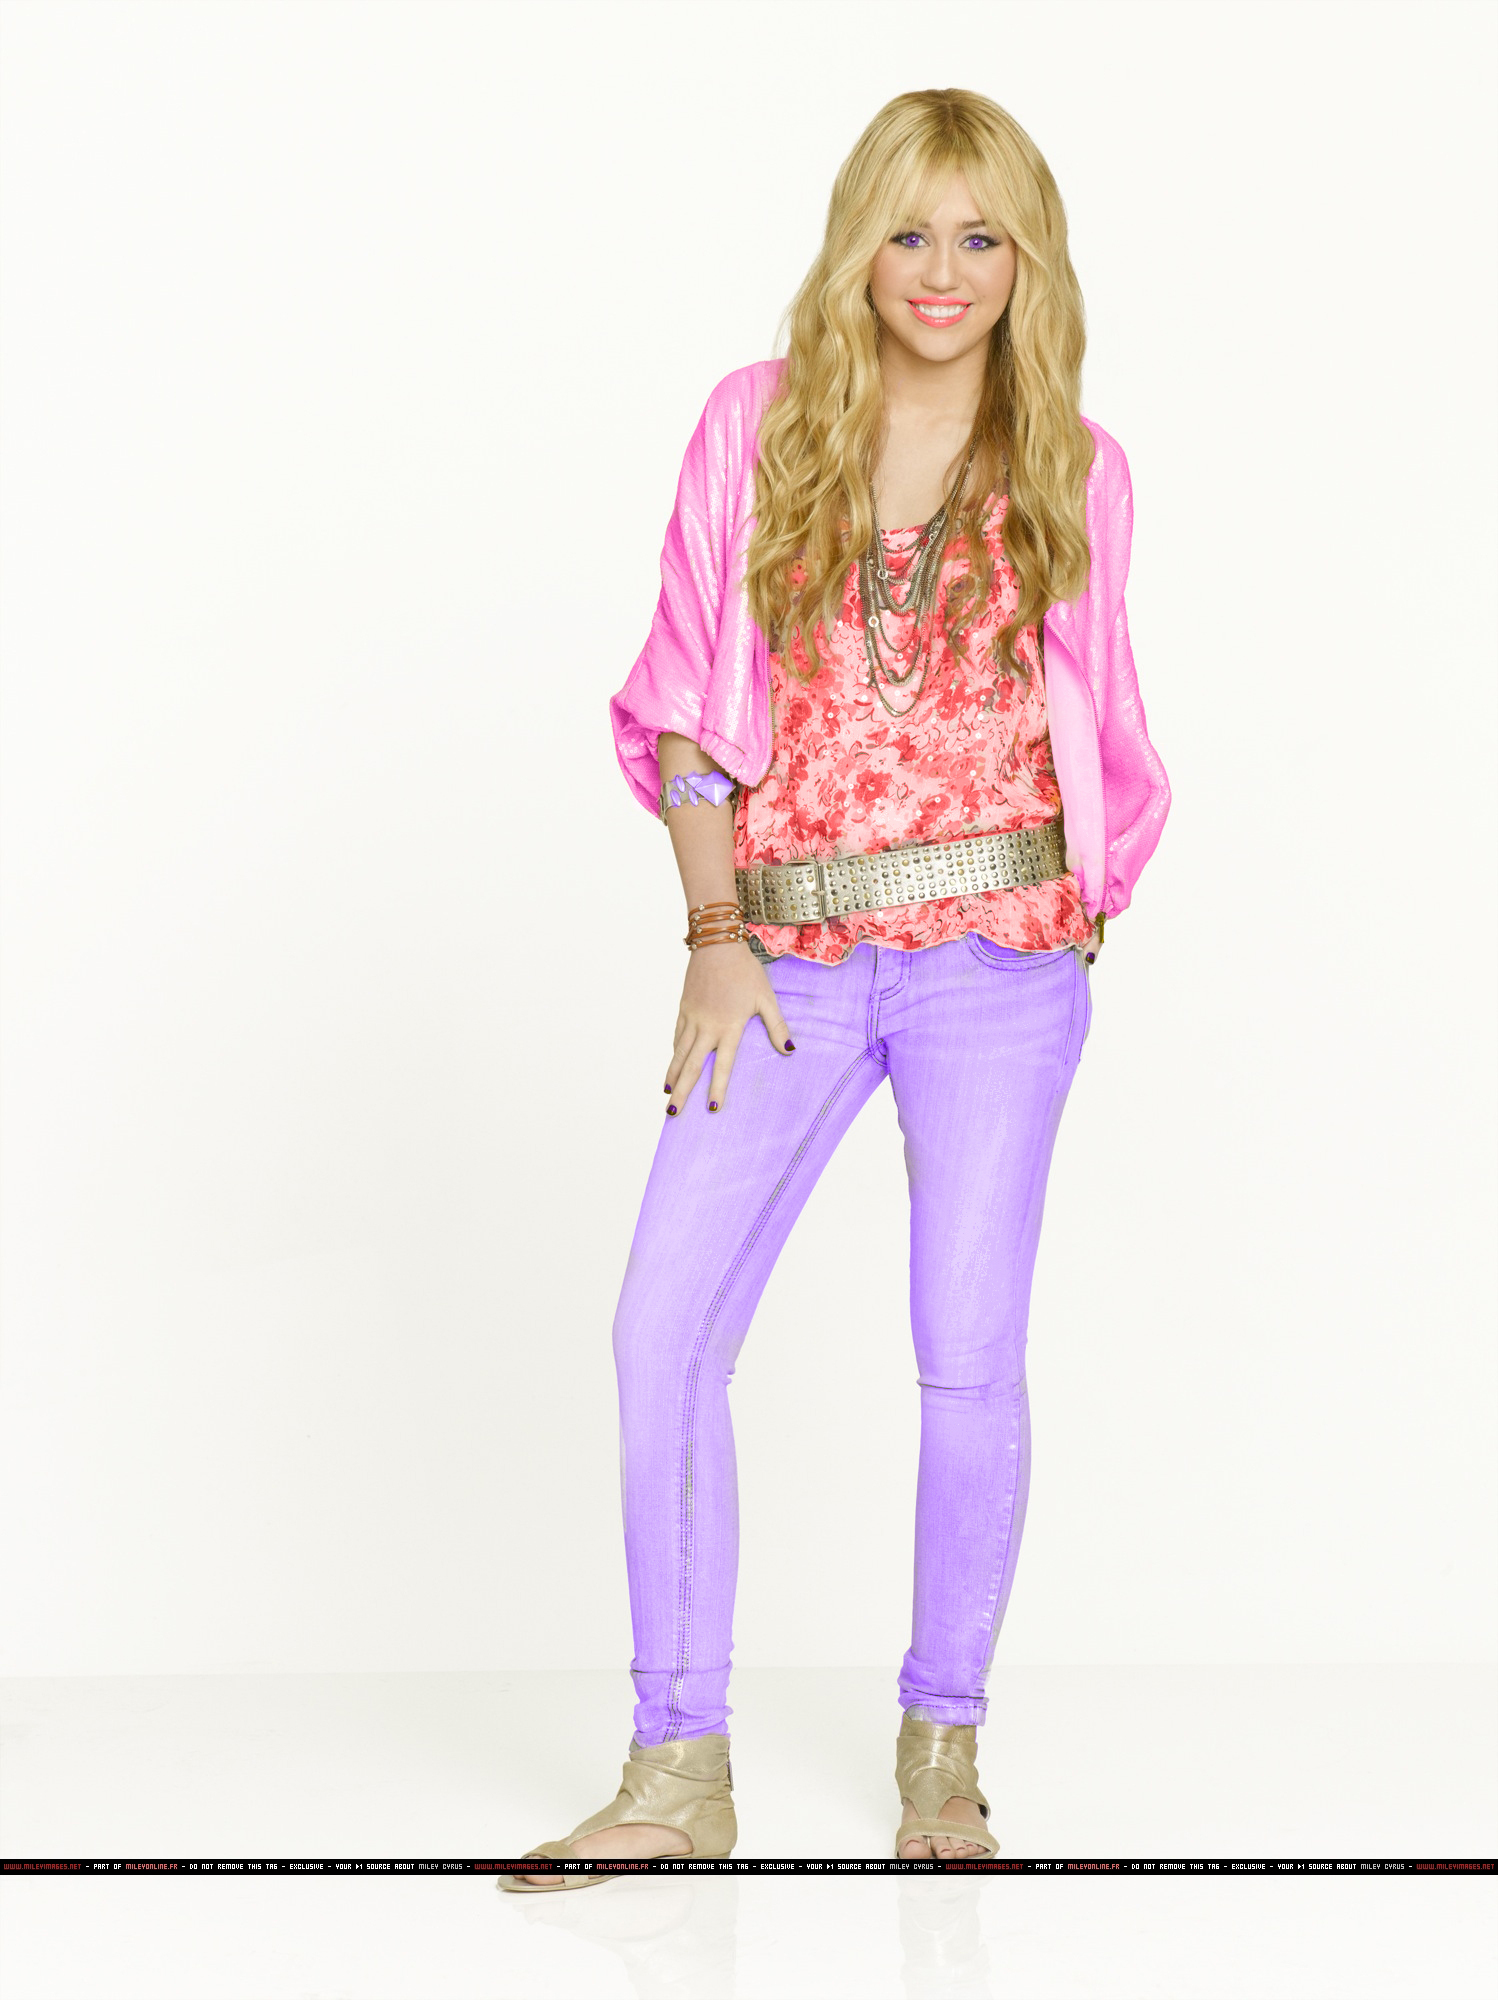 hannah montana forever EXCLUSIVE PHOTOSHOOTS par Pearl